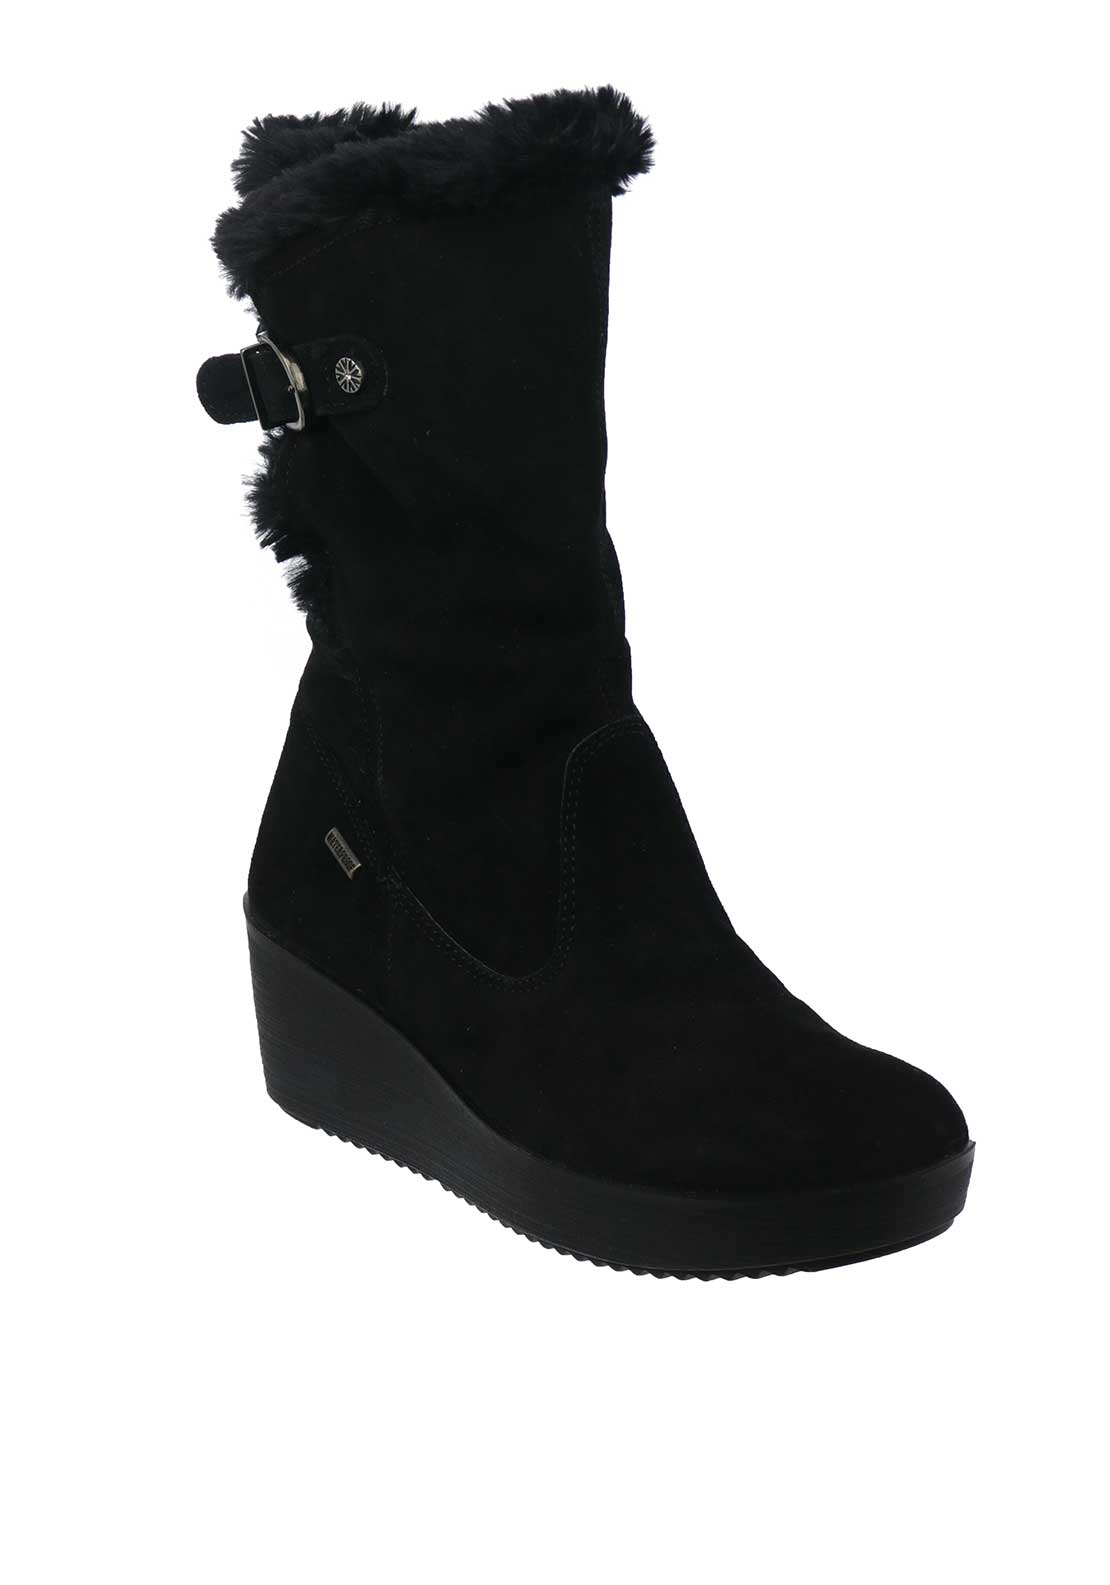 Van Dal Grove Suede Faux Fur Wedged Boots, Black